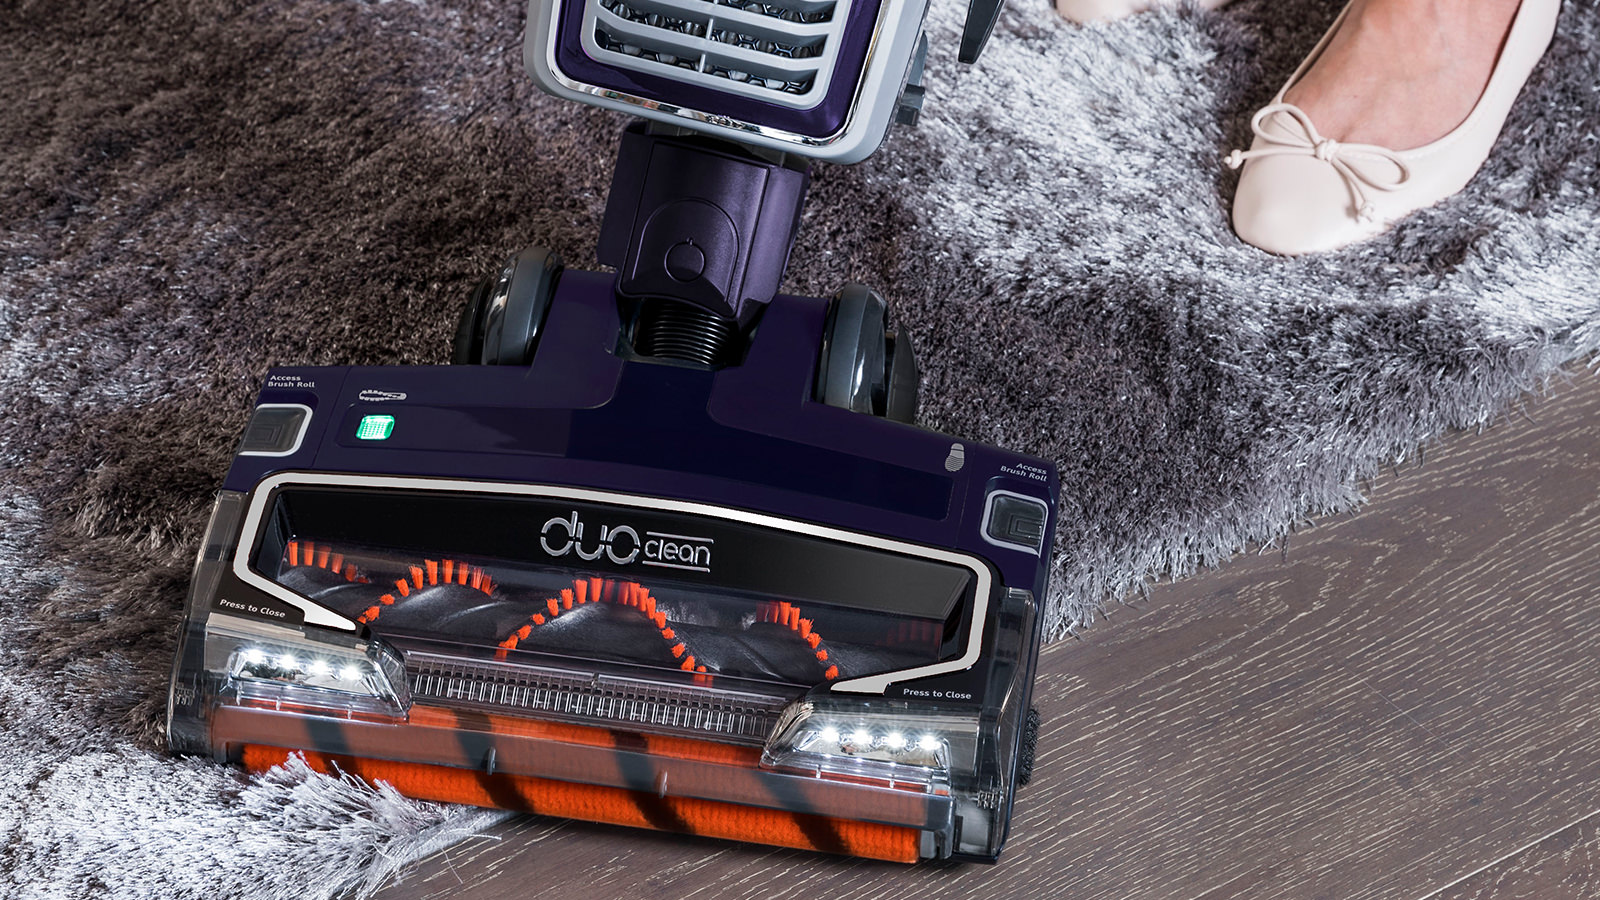 Clean both carpets and hard floors with the Shark DuoClean Upright Vacuum Cleaners with Powered Lift-Away AX910UK